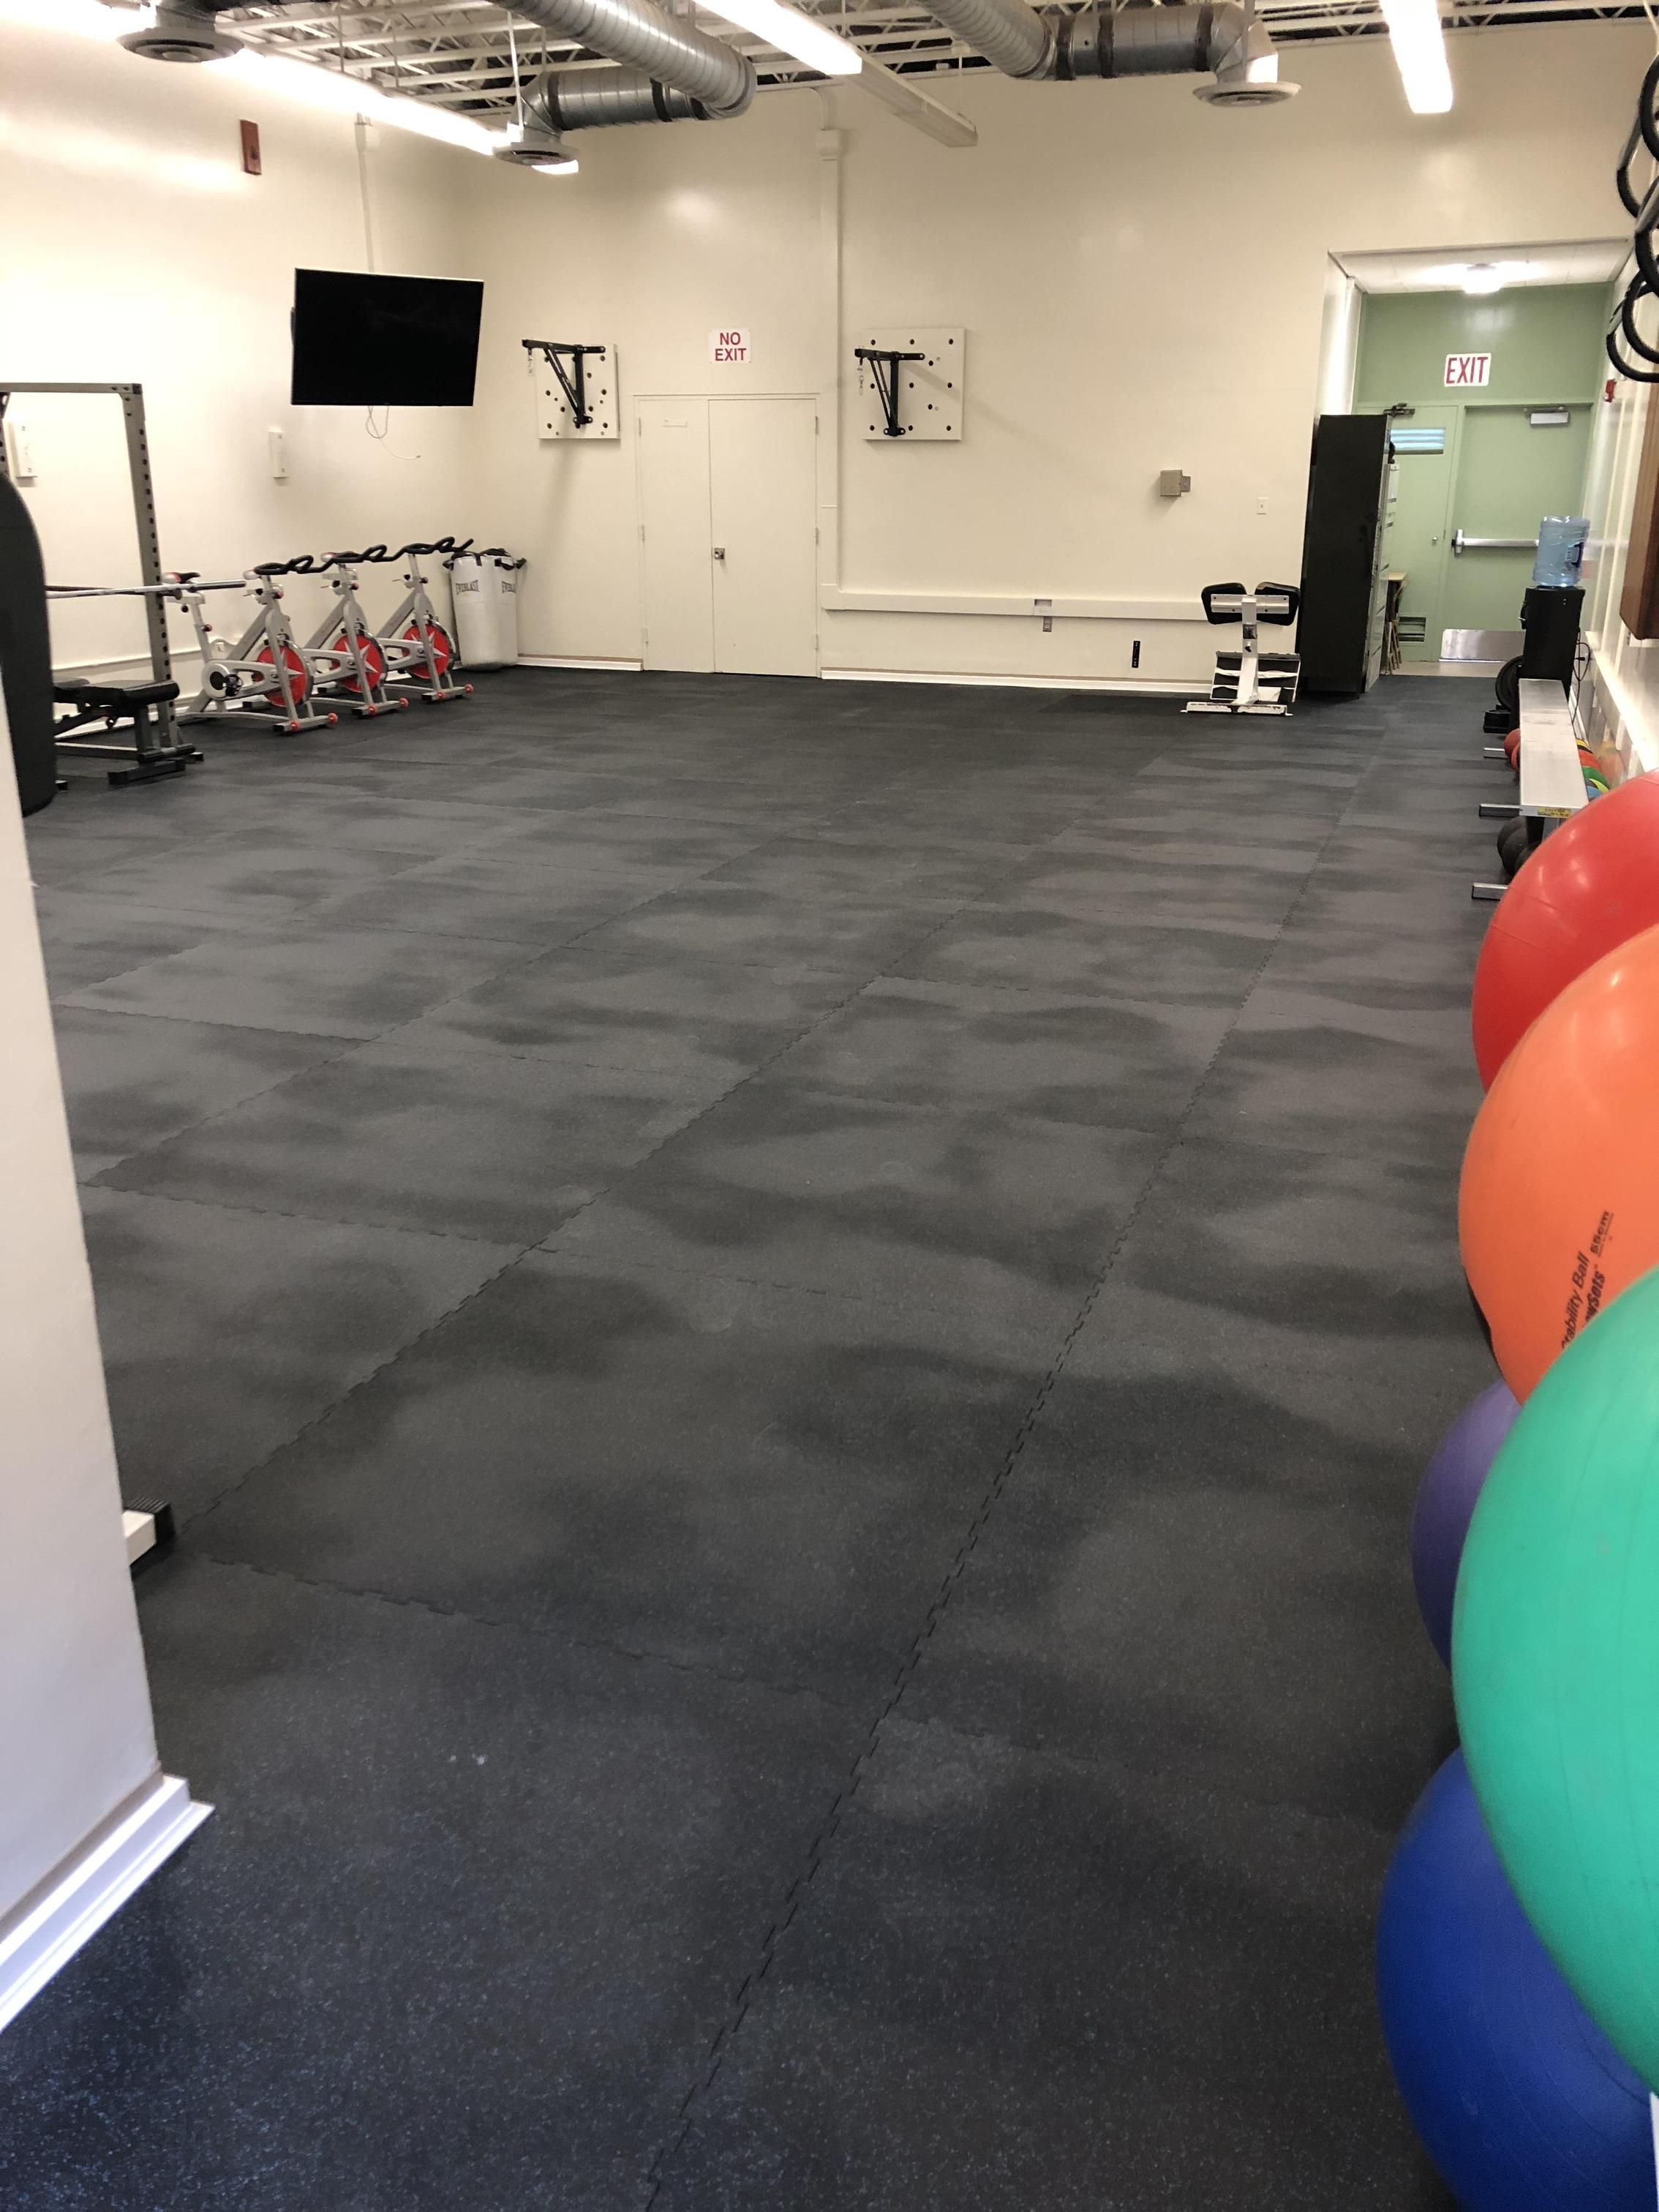 New rubber floors installed in Parks Team Room...time to lift some weights!